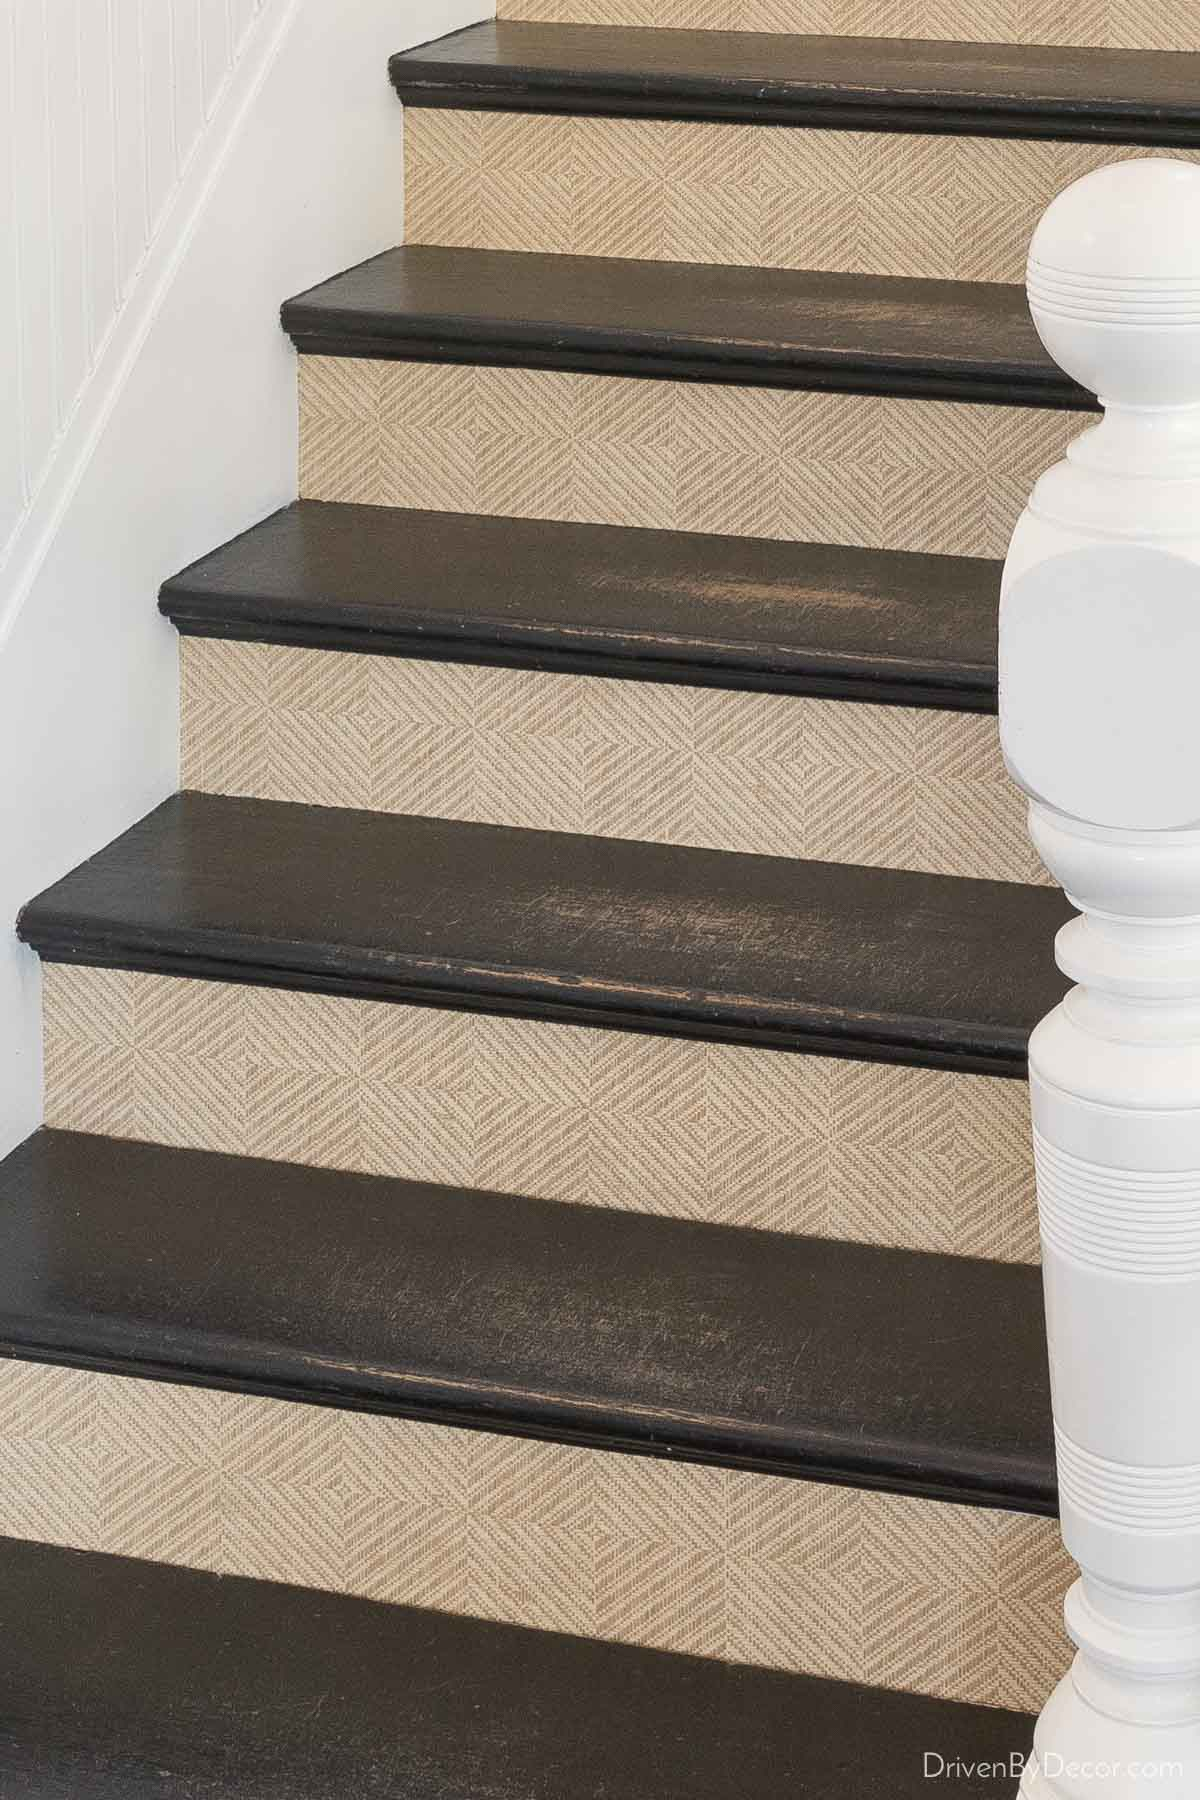 Patterned grasscloth wallpaper on the risers creates a beautiful staircase!